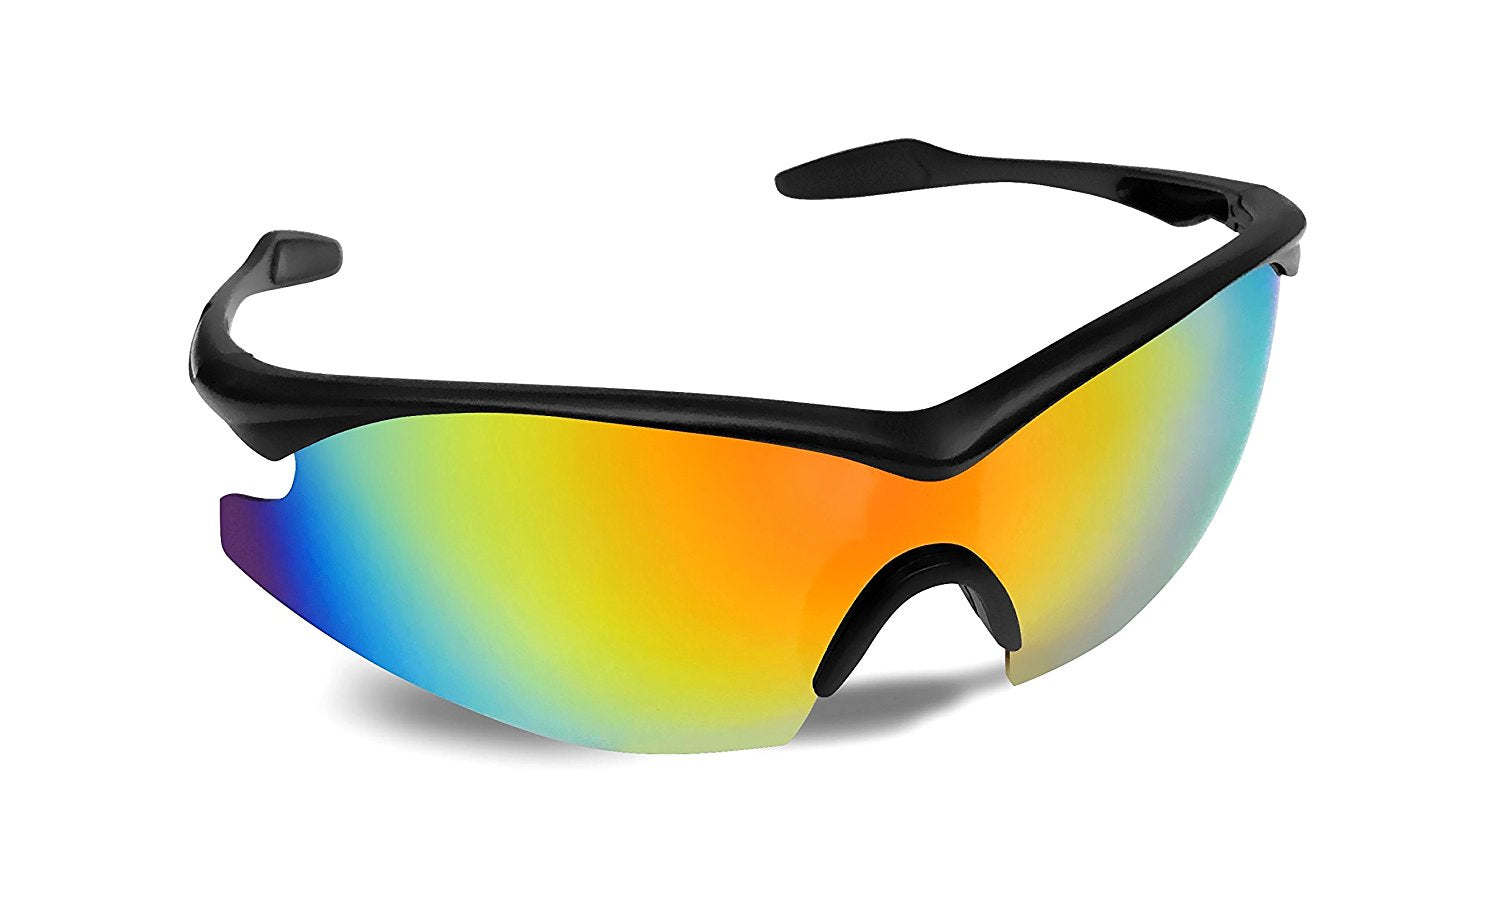 TAC GLASSES Polarized Sunglasses for Men/Women